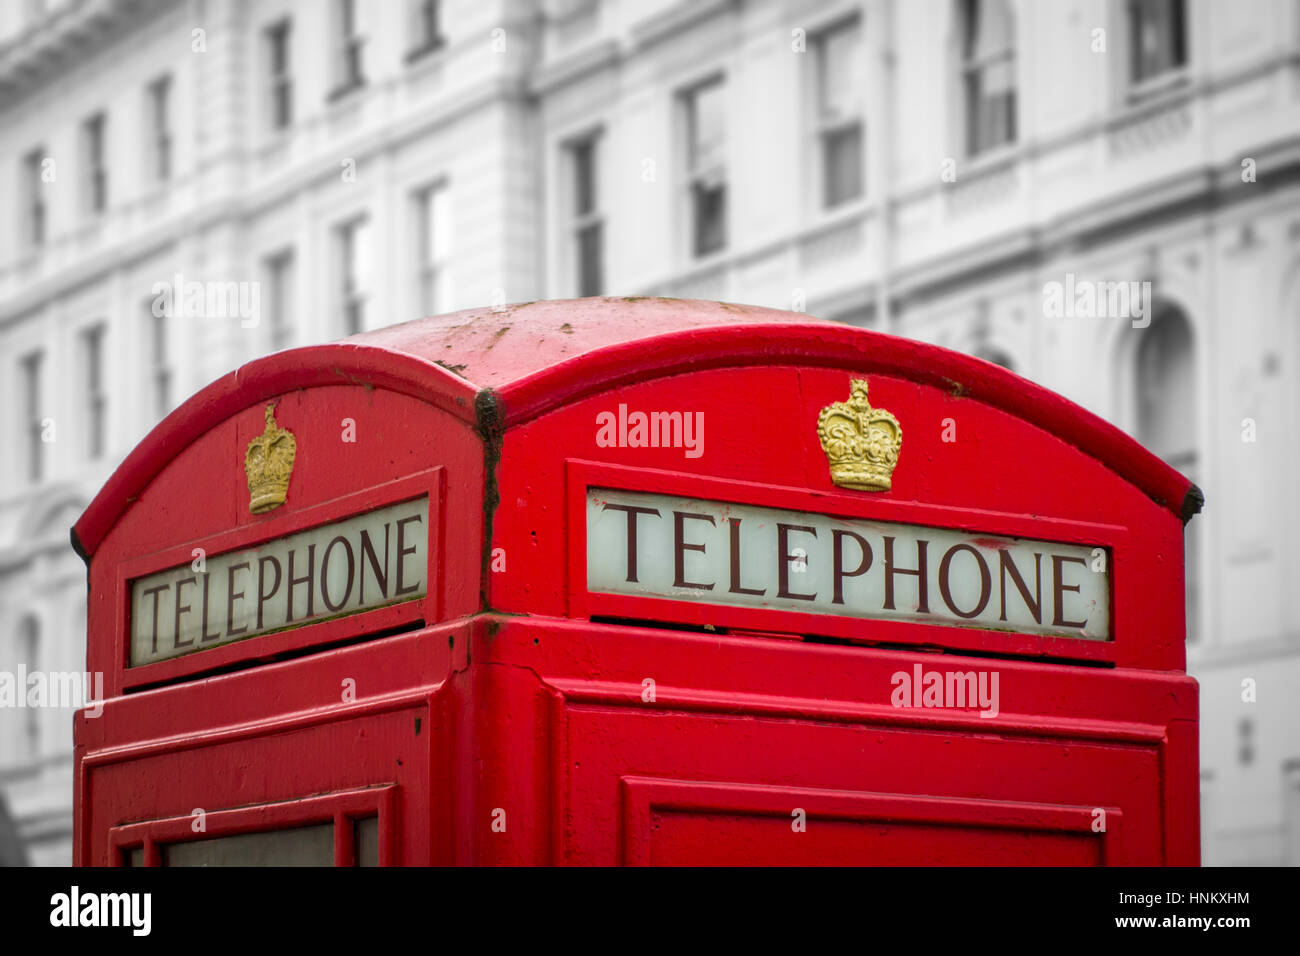 British red telephone box, London, UK - Stock Image